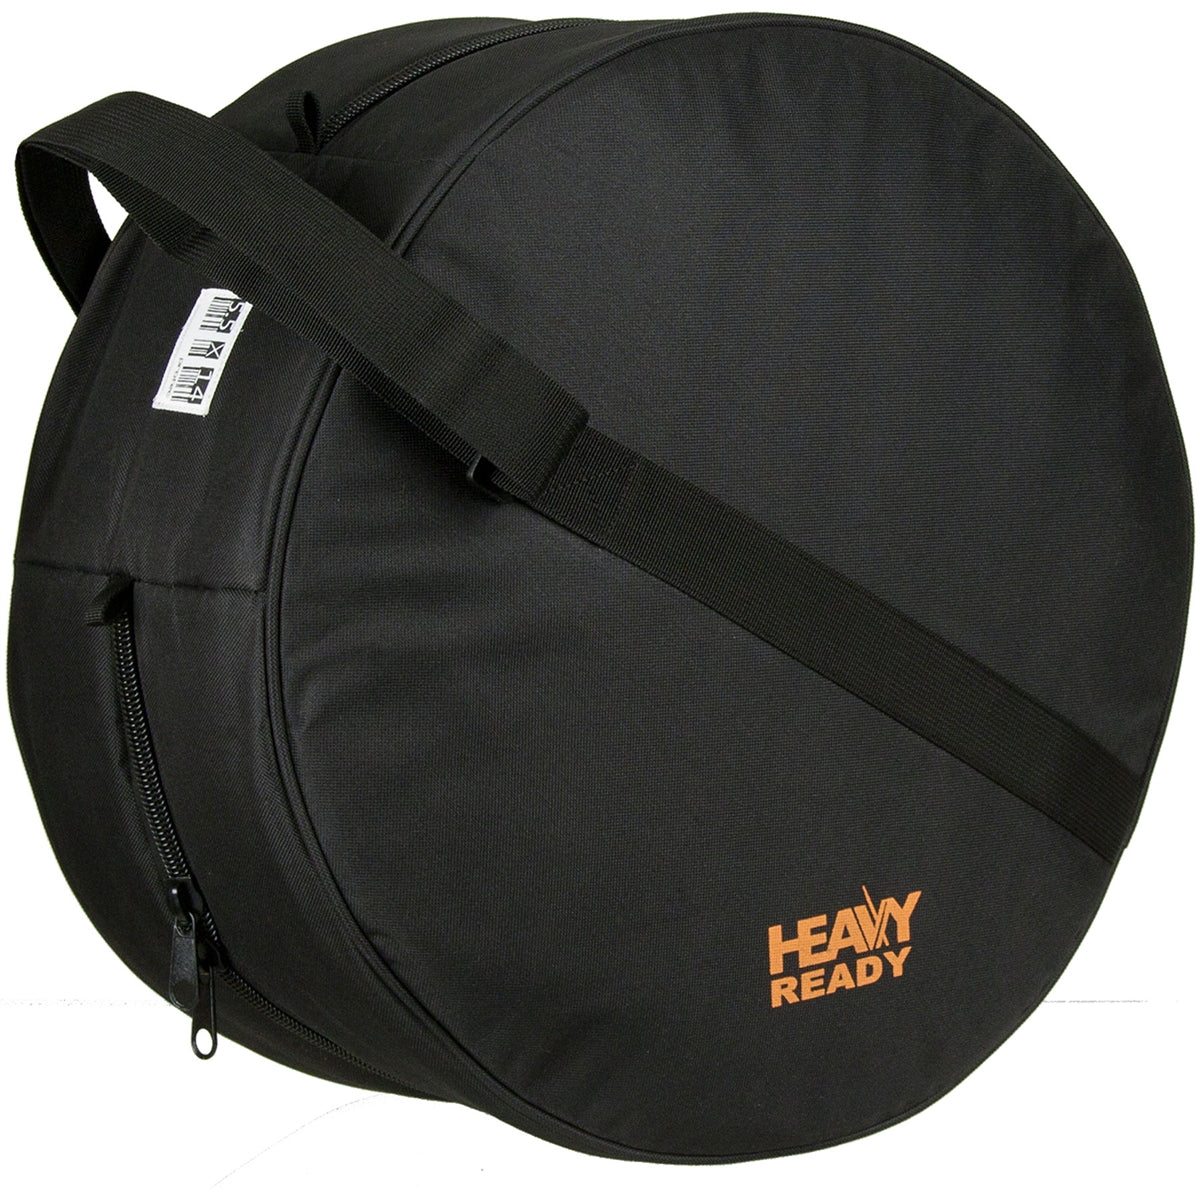 PROTEC Heavy Ready Padded  Snare Bag 14x5.5